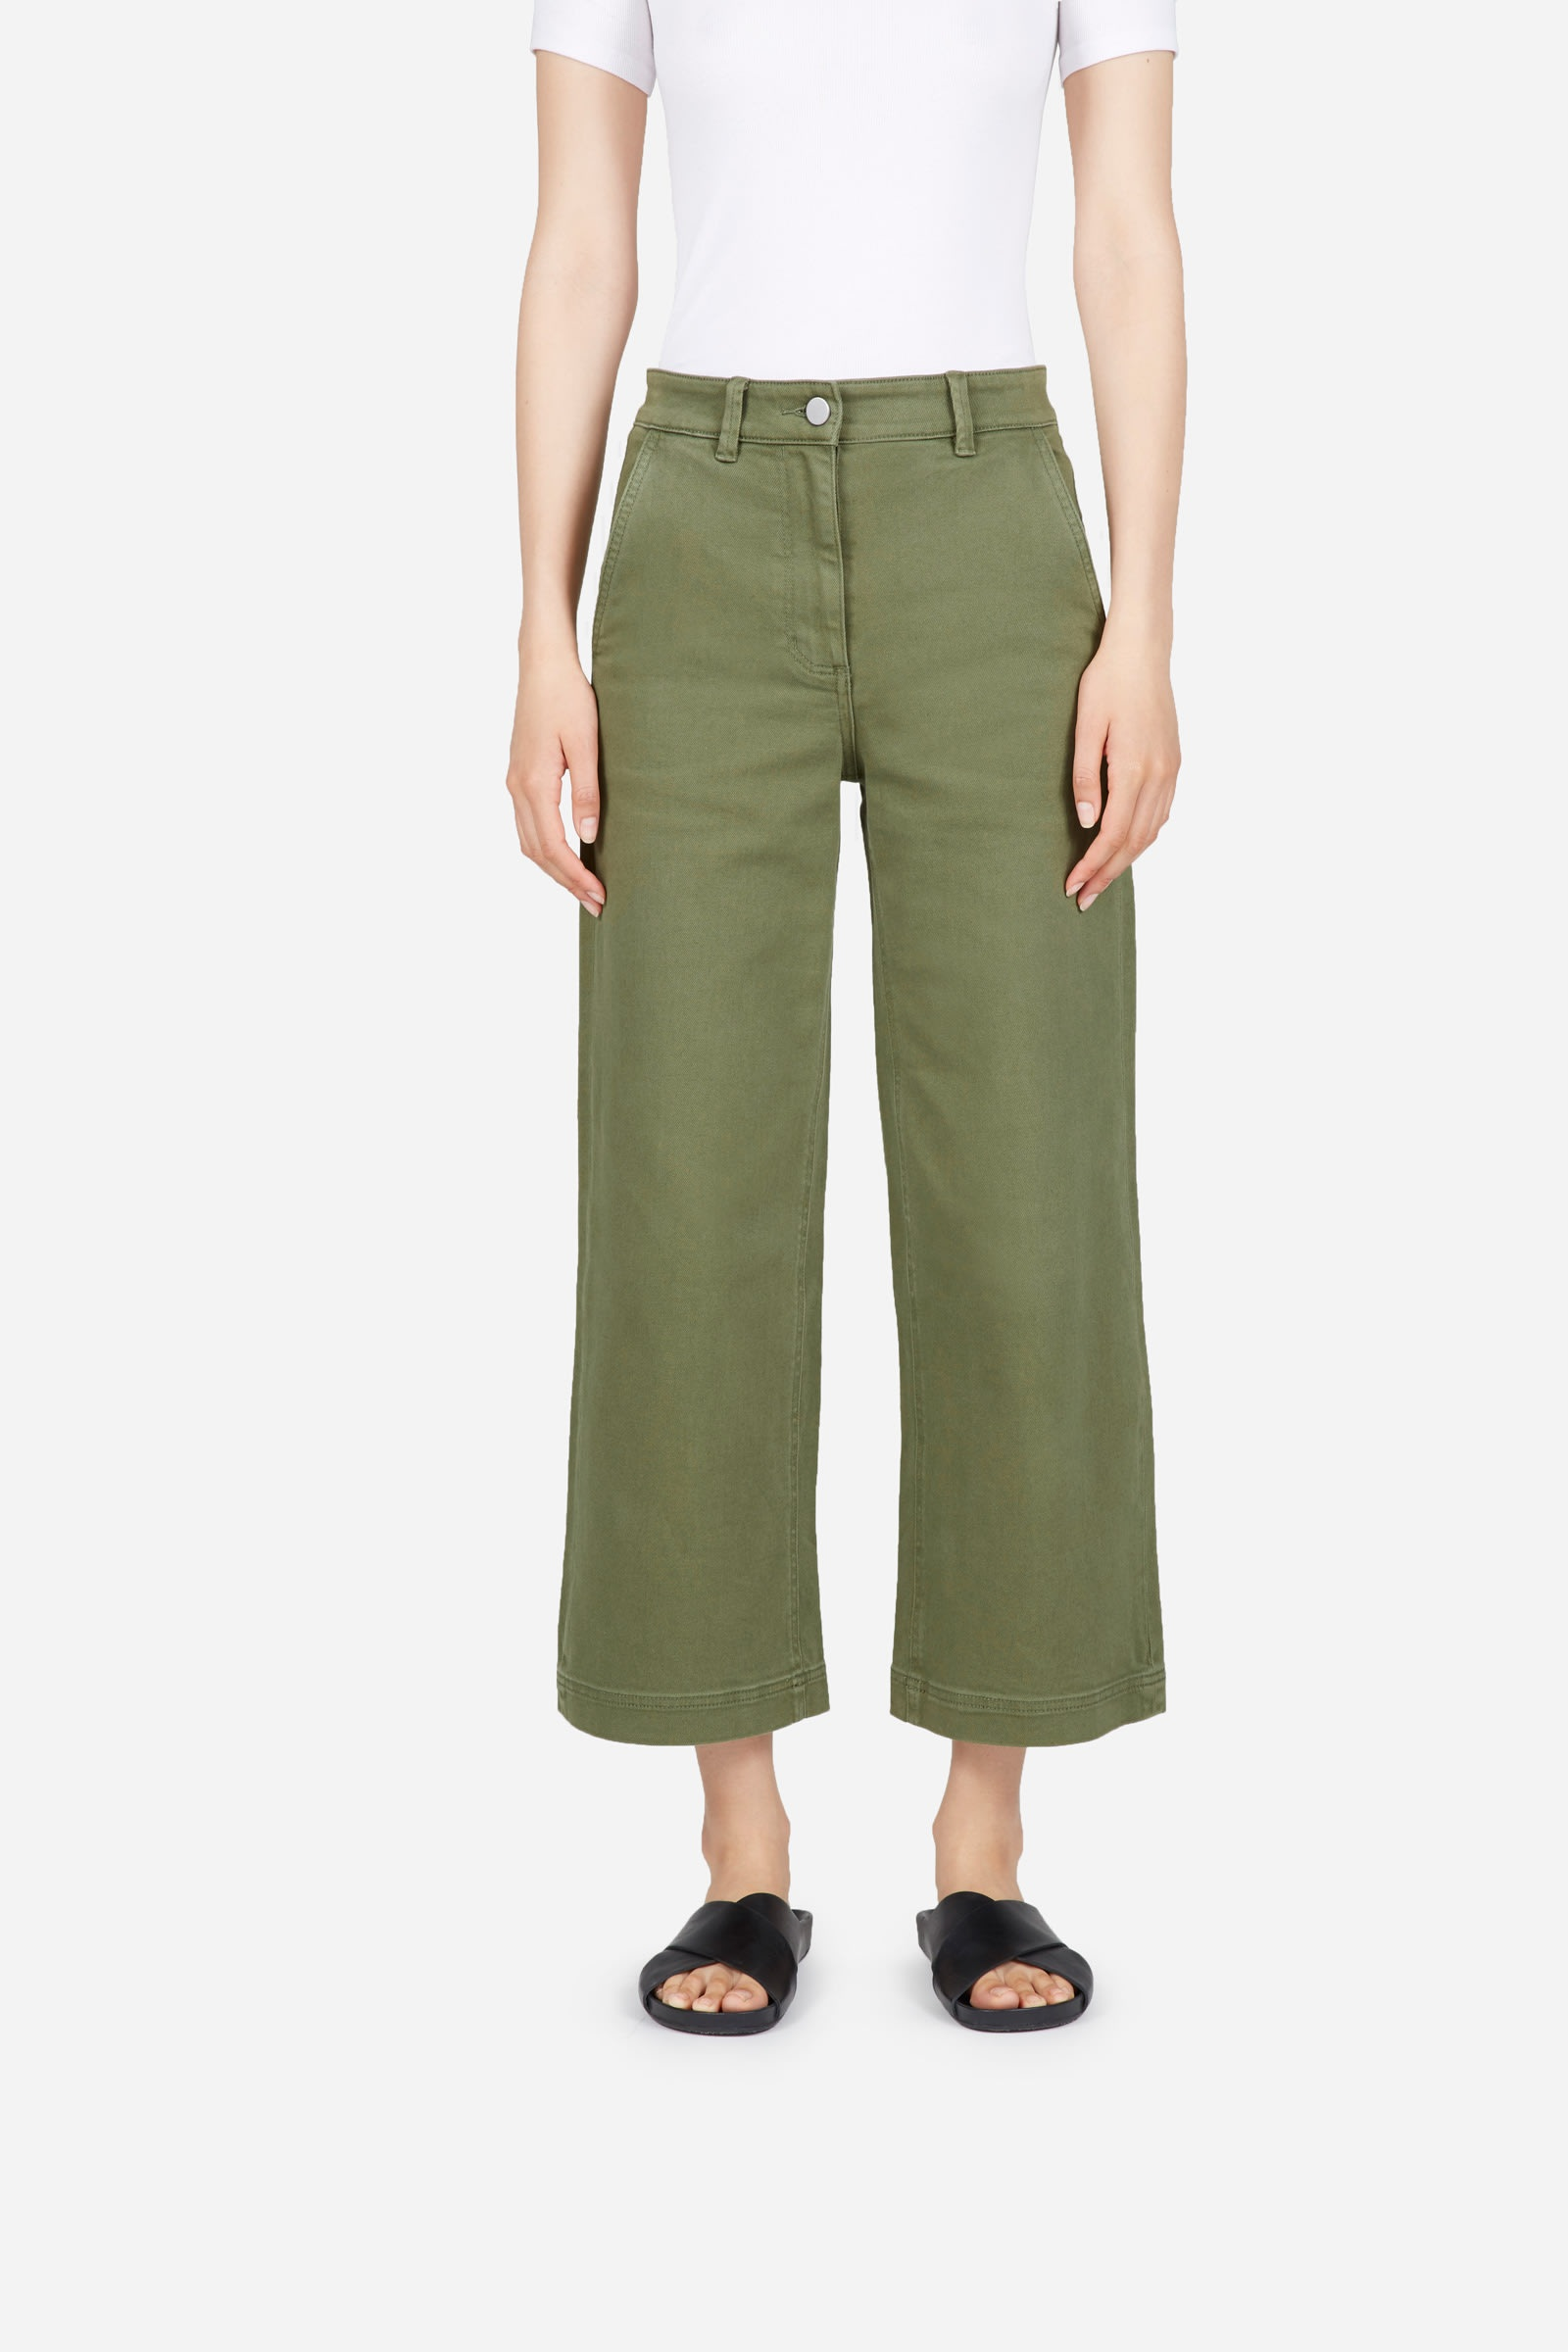 Green Cropped Pants, $68, Everlane